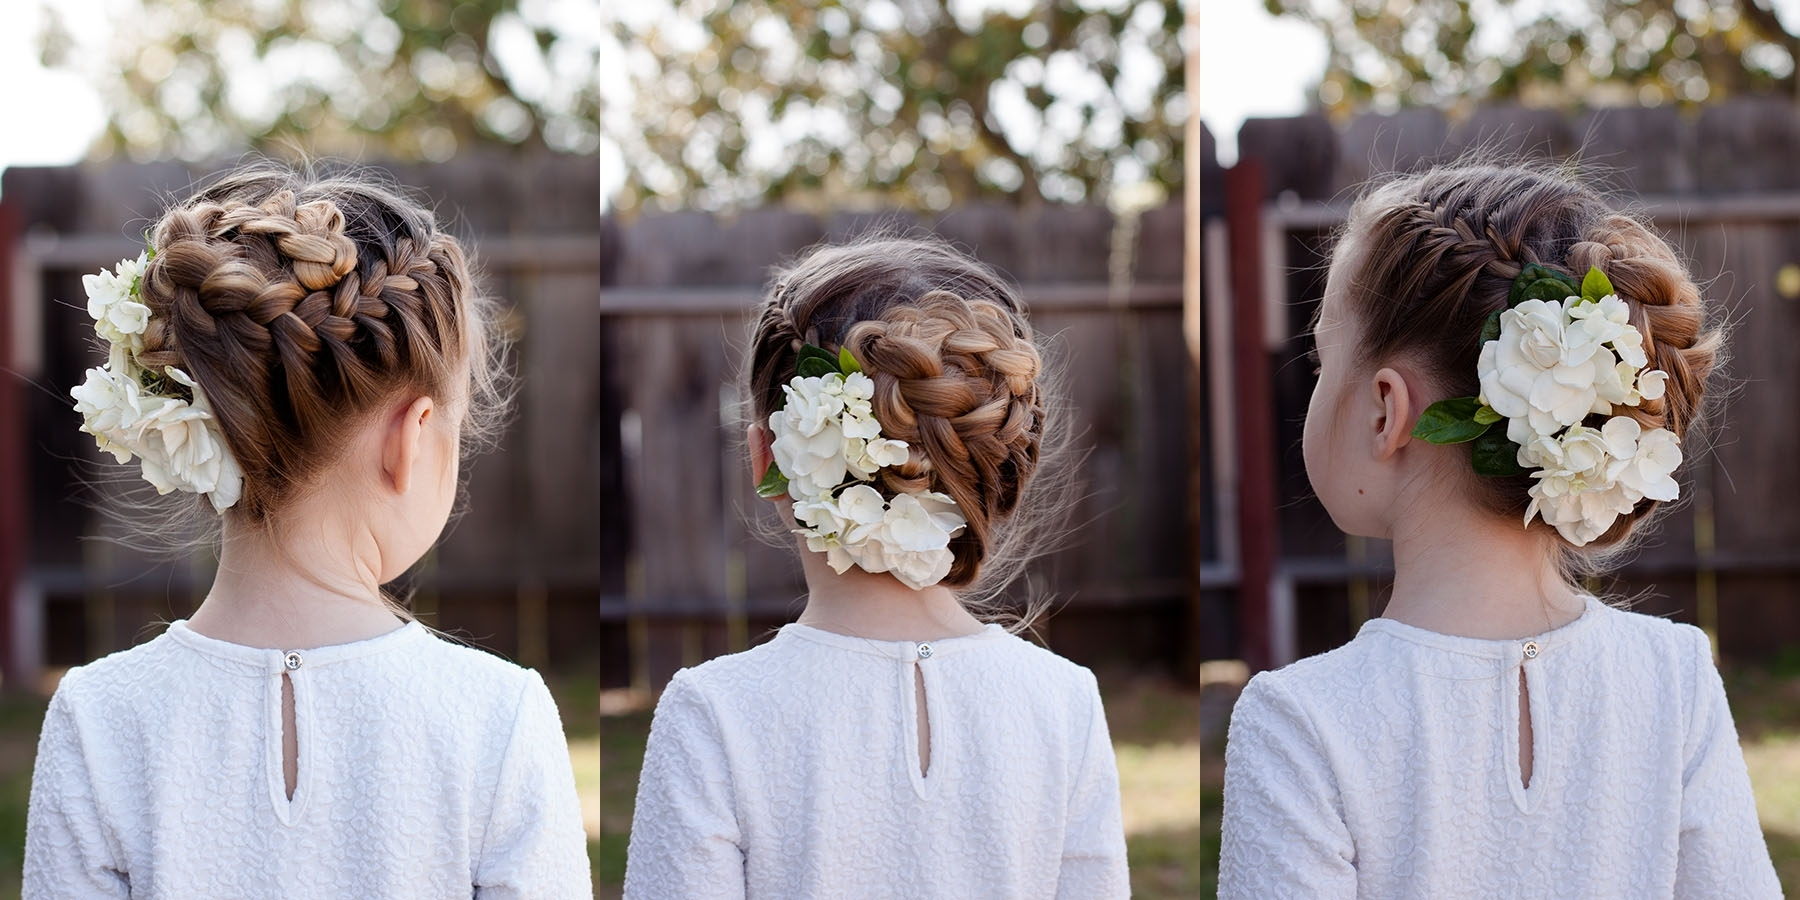 Famous Braids And Flowers Hairstyles Intended For Braids With Flowers (View 4 of 15)